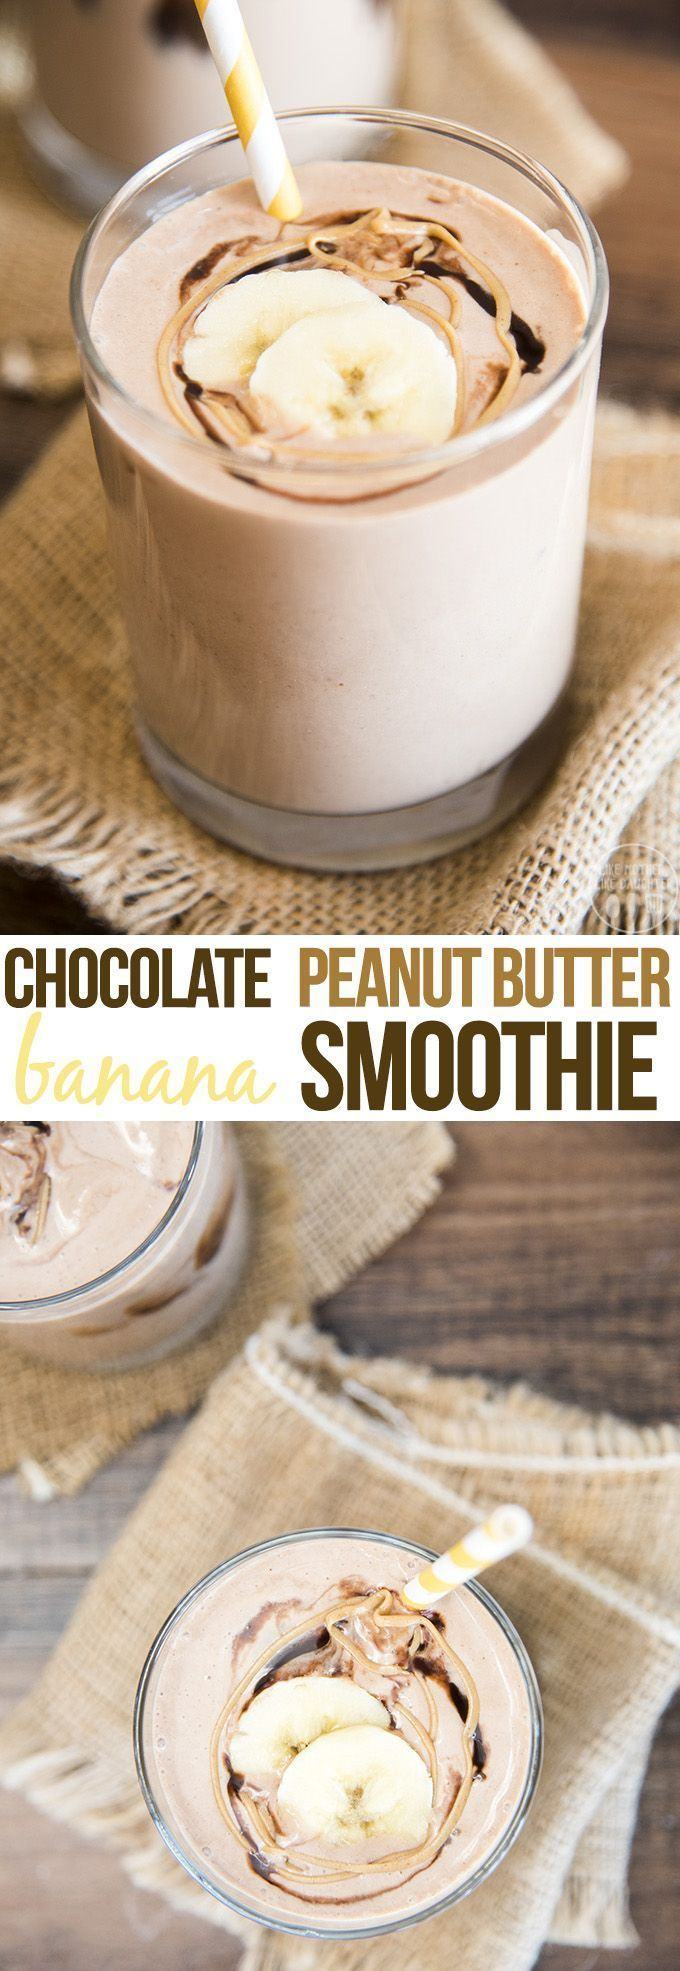 Chocolate Peanut Butter Banana Smoothie - This easy smoothie is the perfect creamy smoothie for a sweet breakfast or lighter dessert!(Summer Bake)